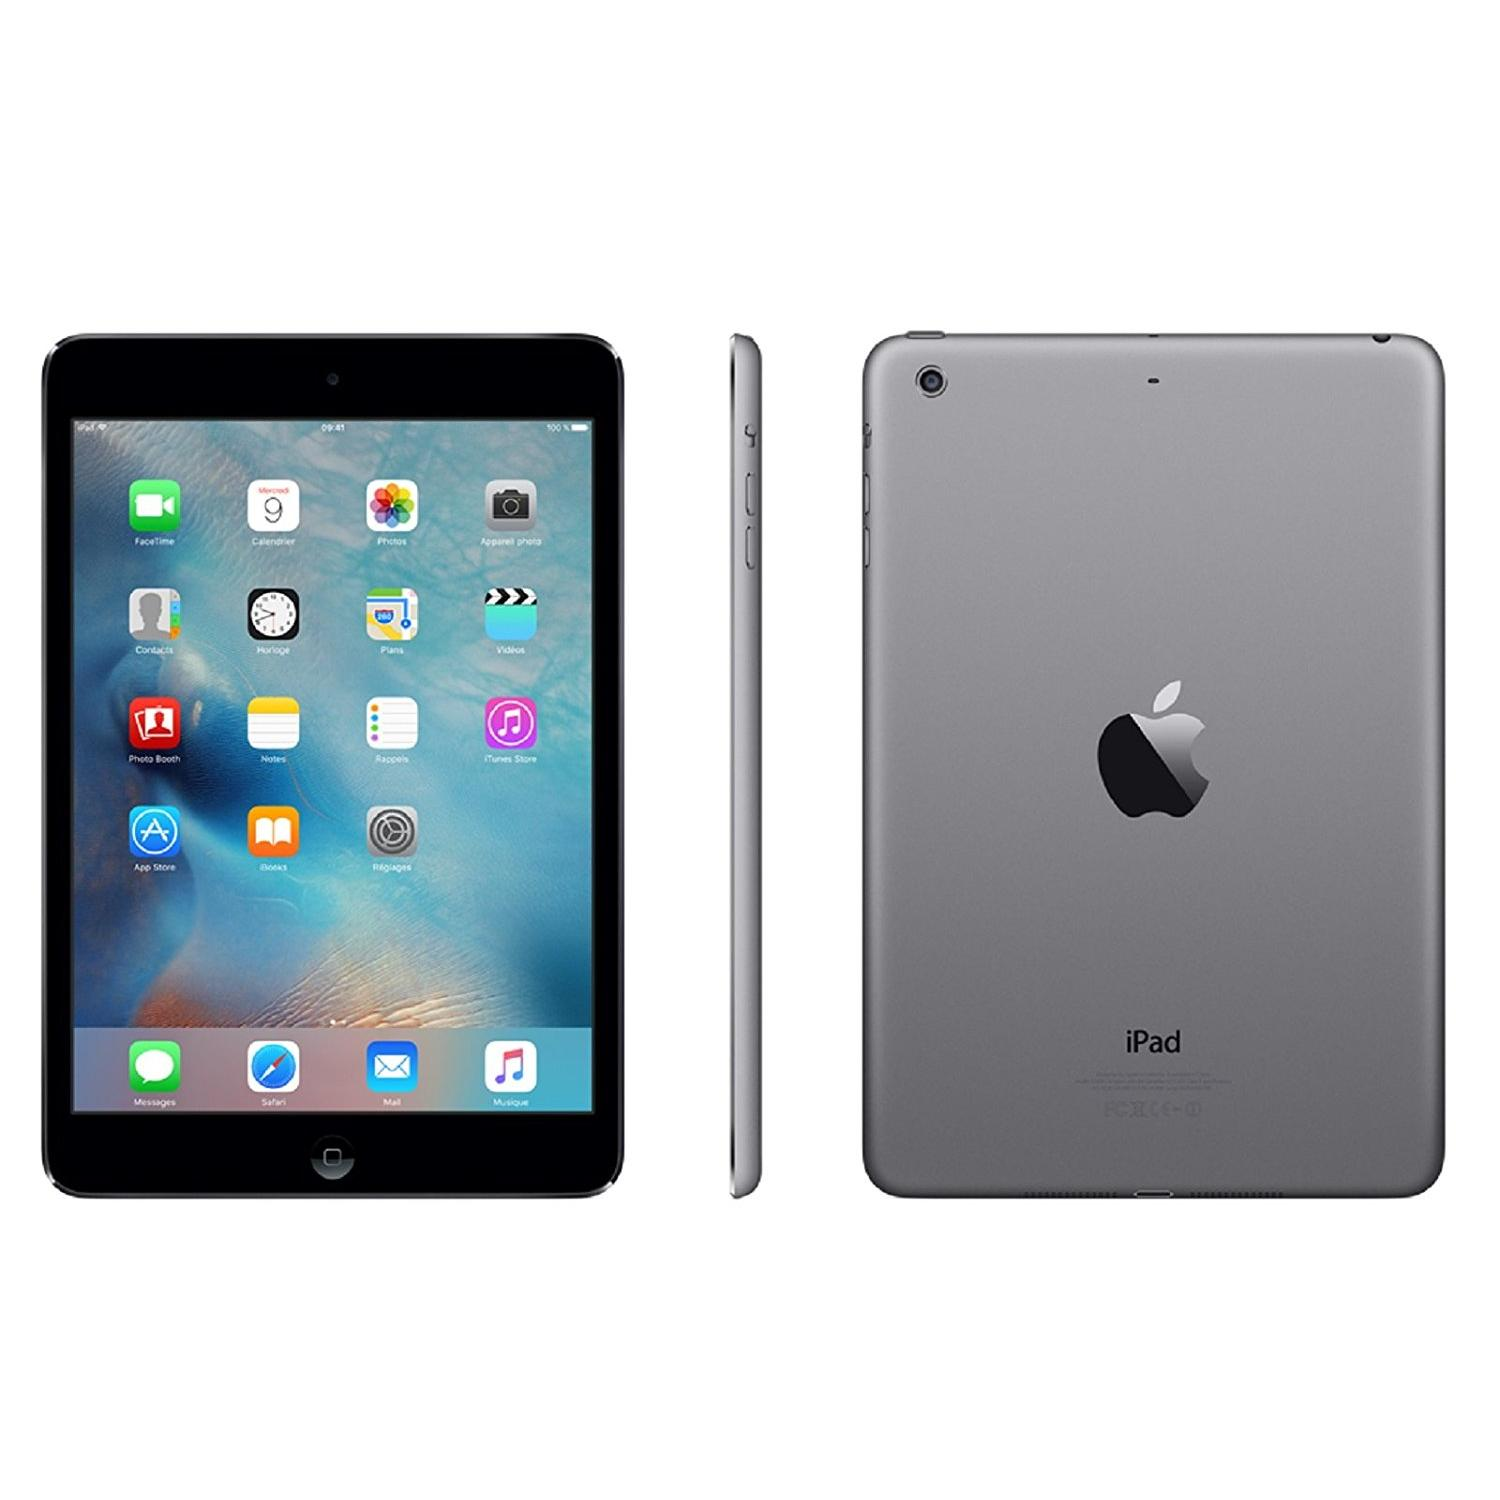 iPad mini 2 16 GB 4G - Gris espacial - Libre